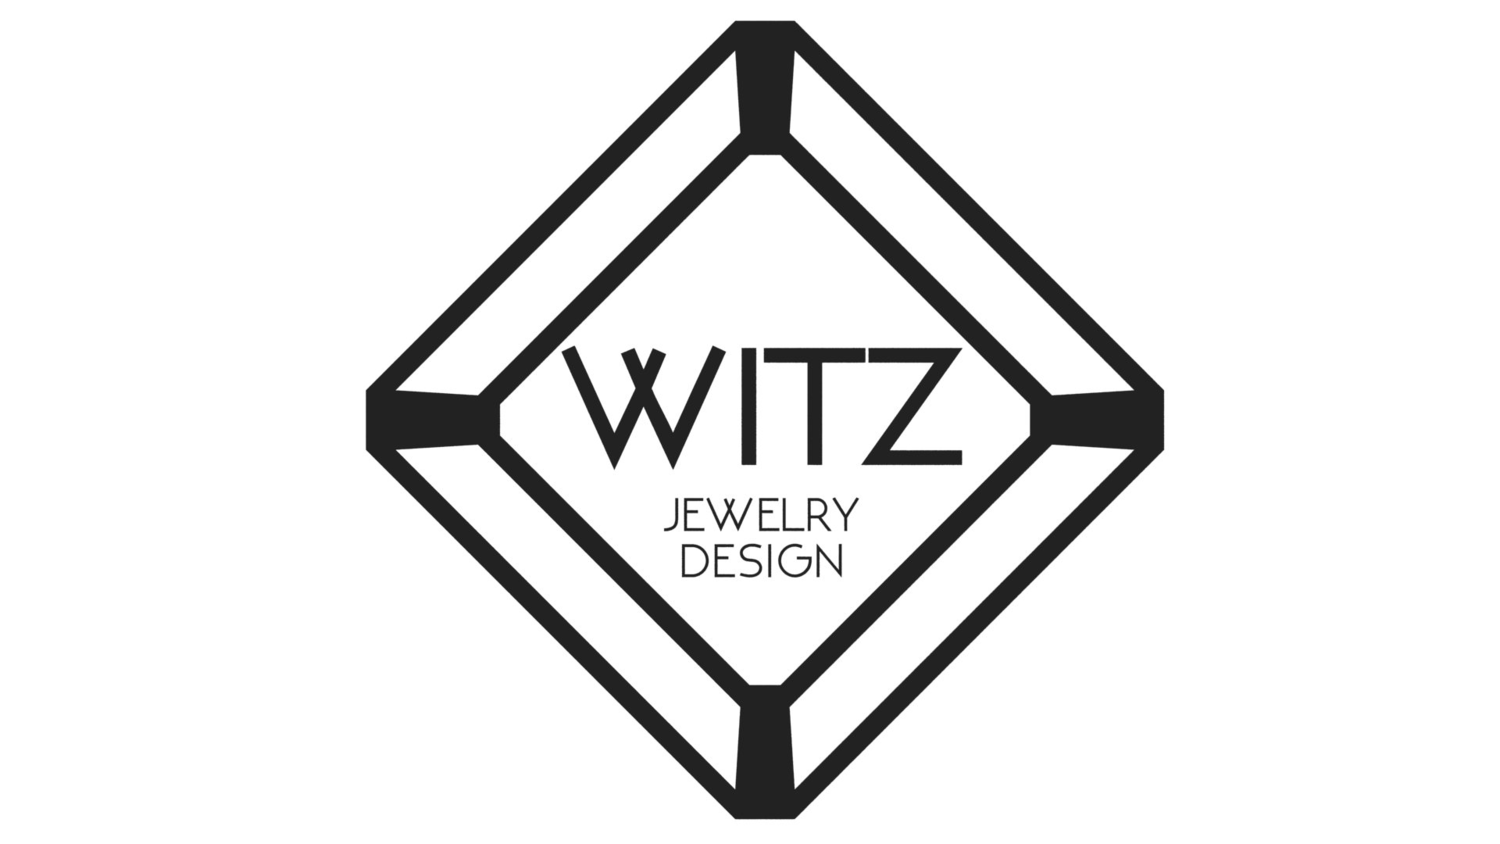 Witz Jewelry Design™